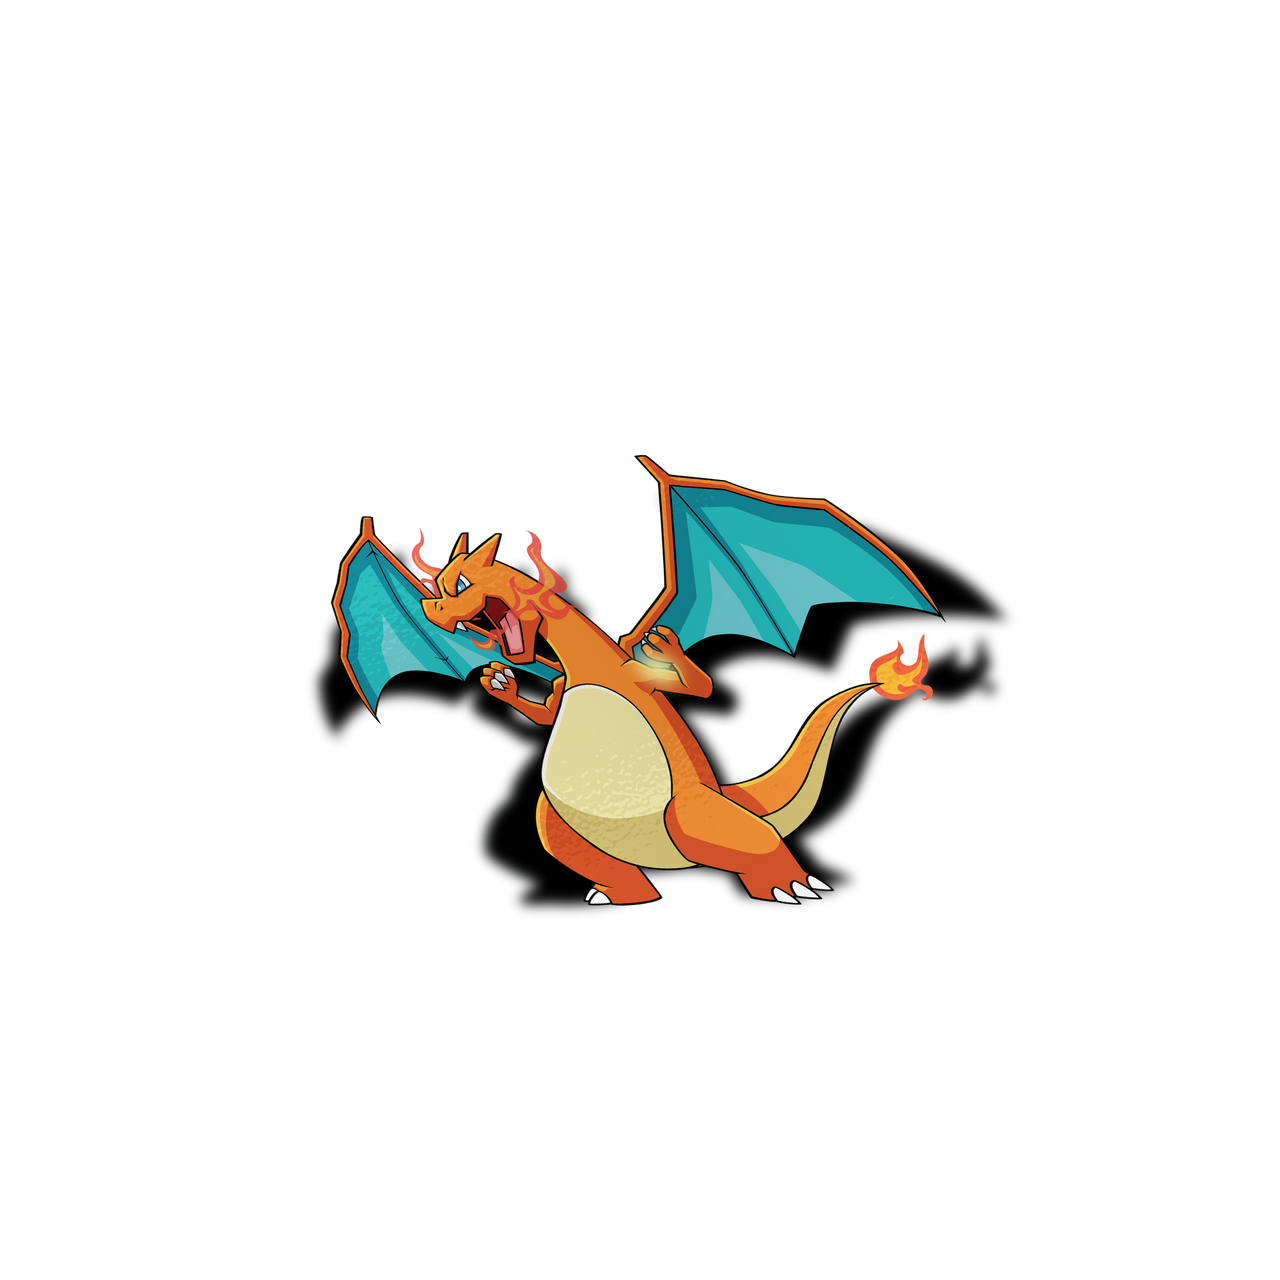 Charizard Sticker